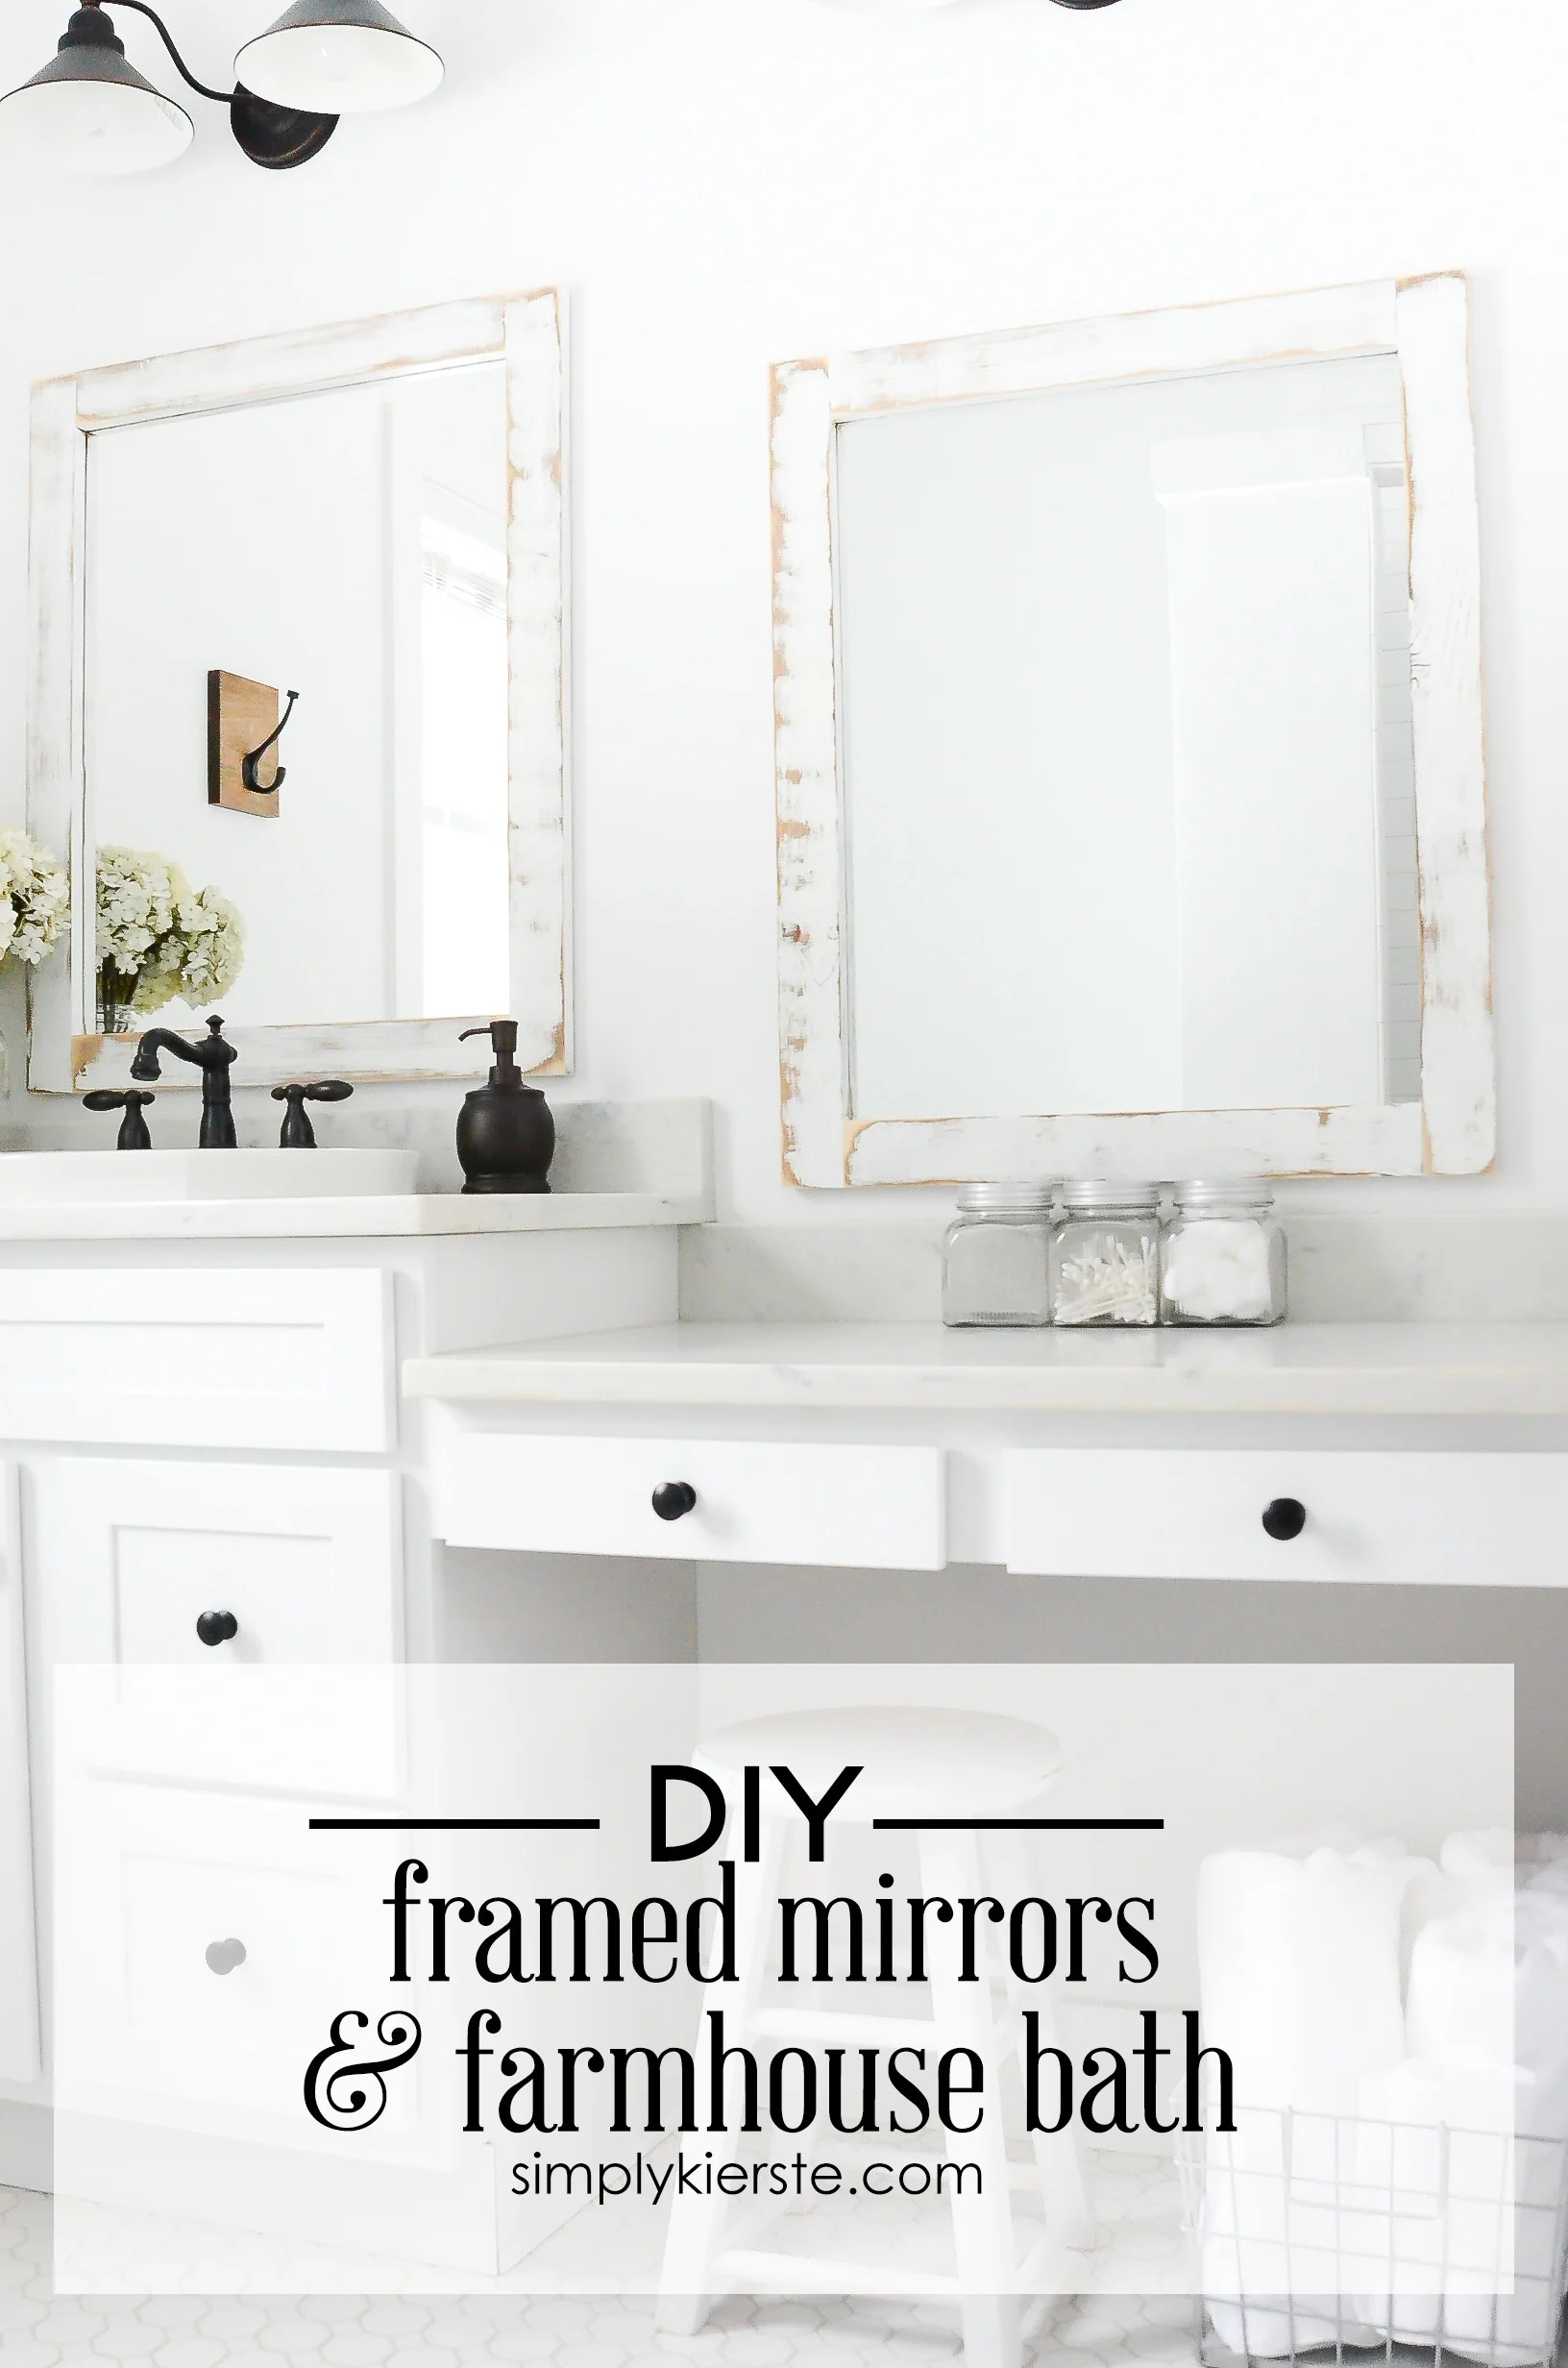 Farmhouse Bathroom Diy Framed Mirrors Old Salt Farm